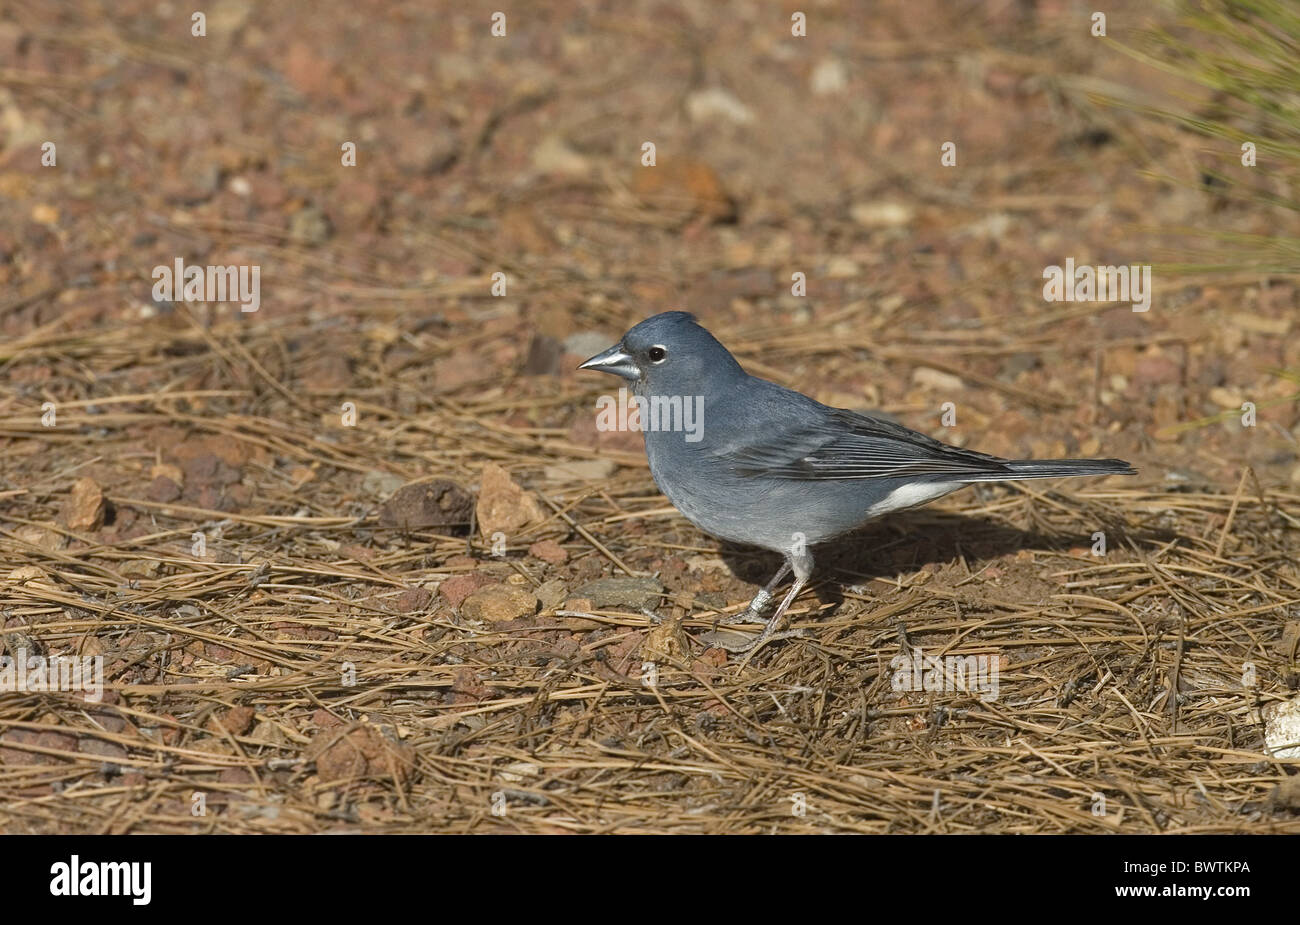 Blue Chaffinch (Fringilla teydea) adult male, standing on ground, Tenerife, Canary Islands - Stock Image